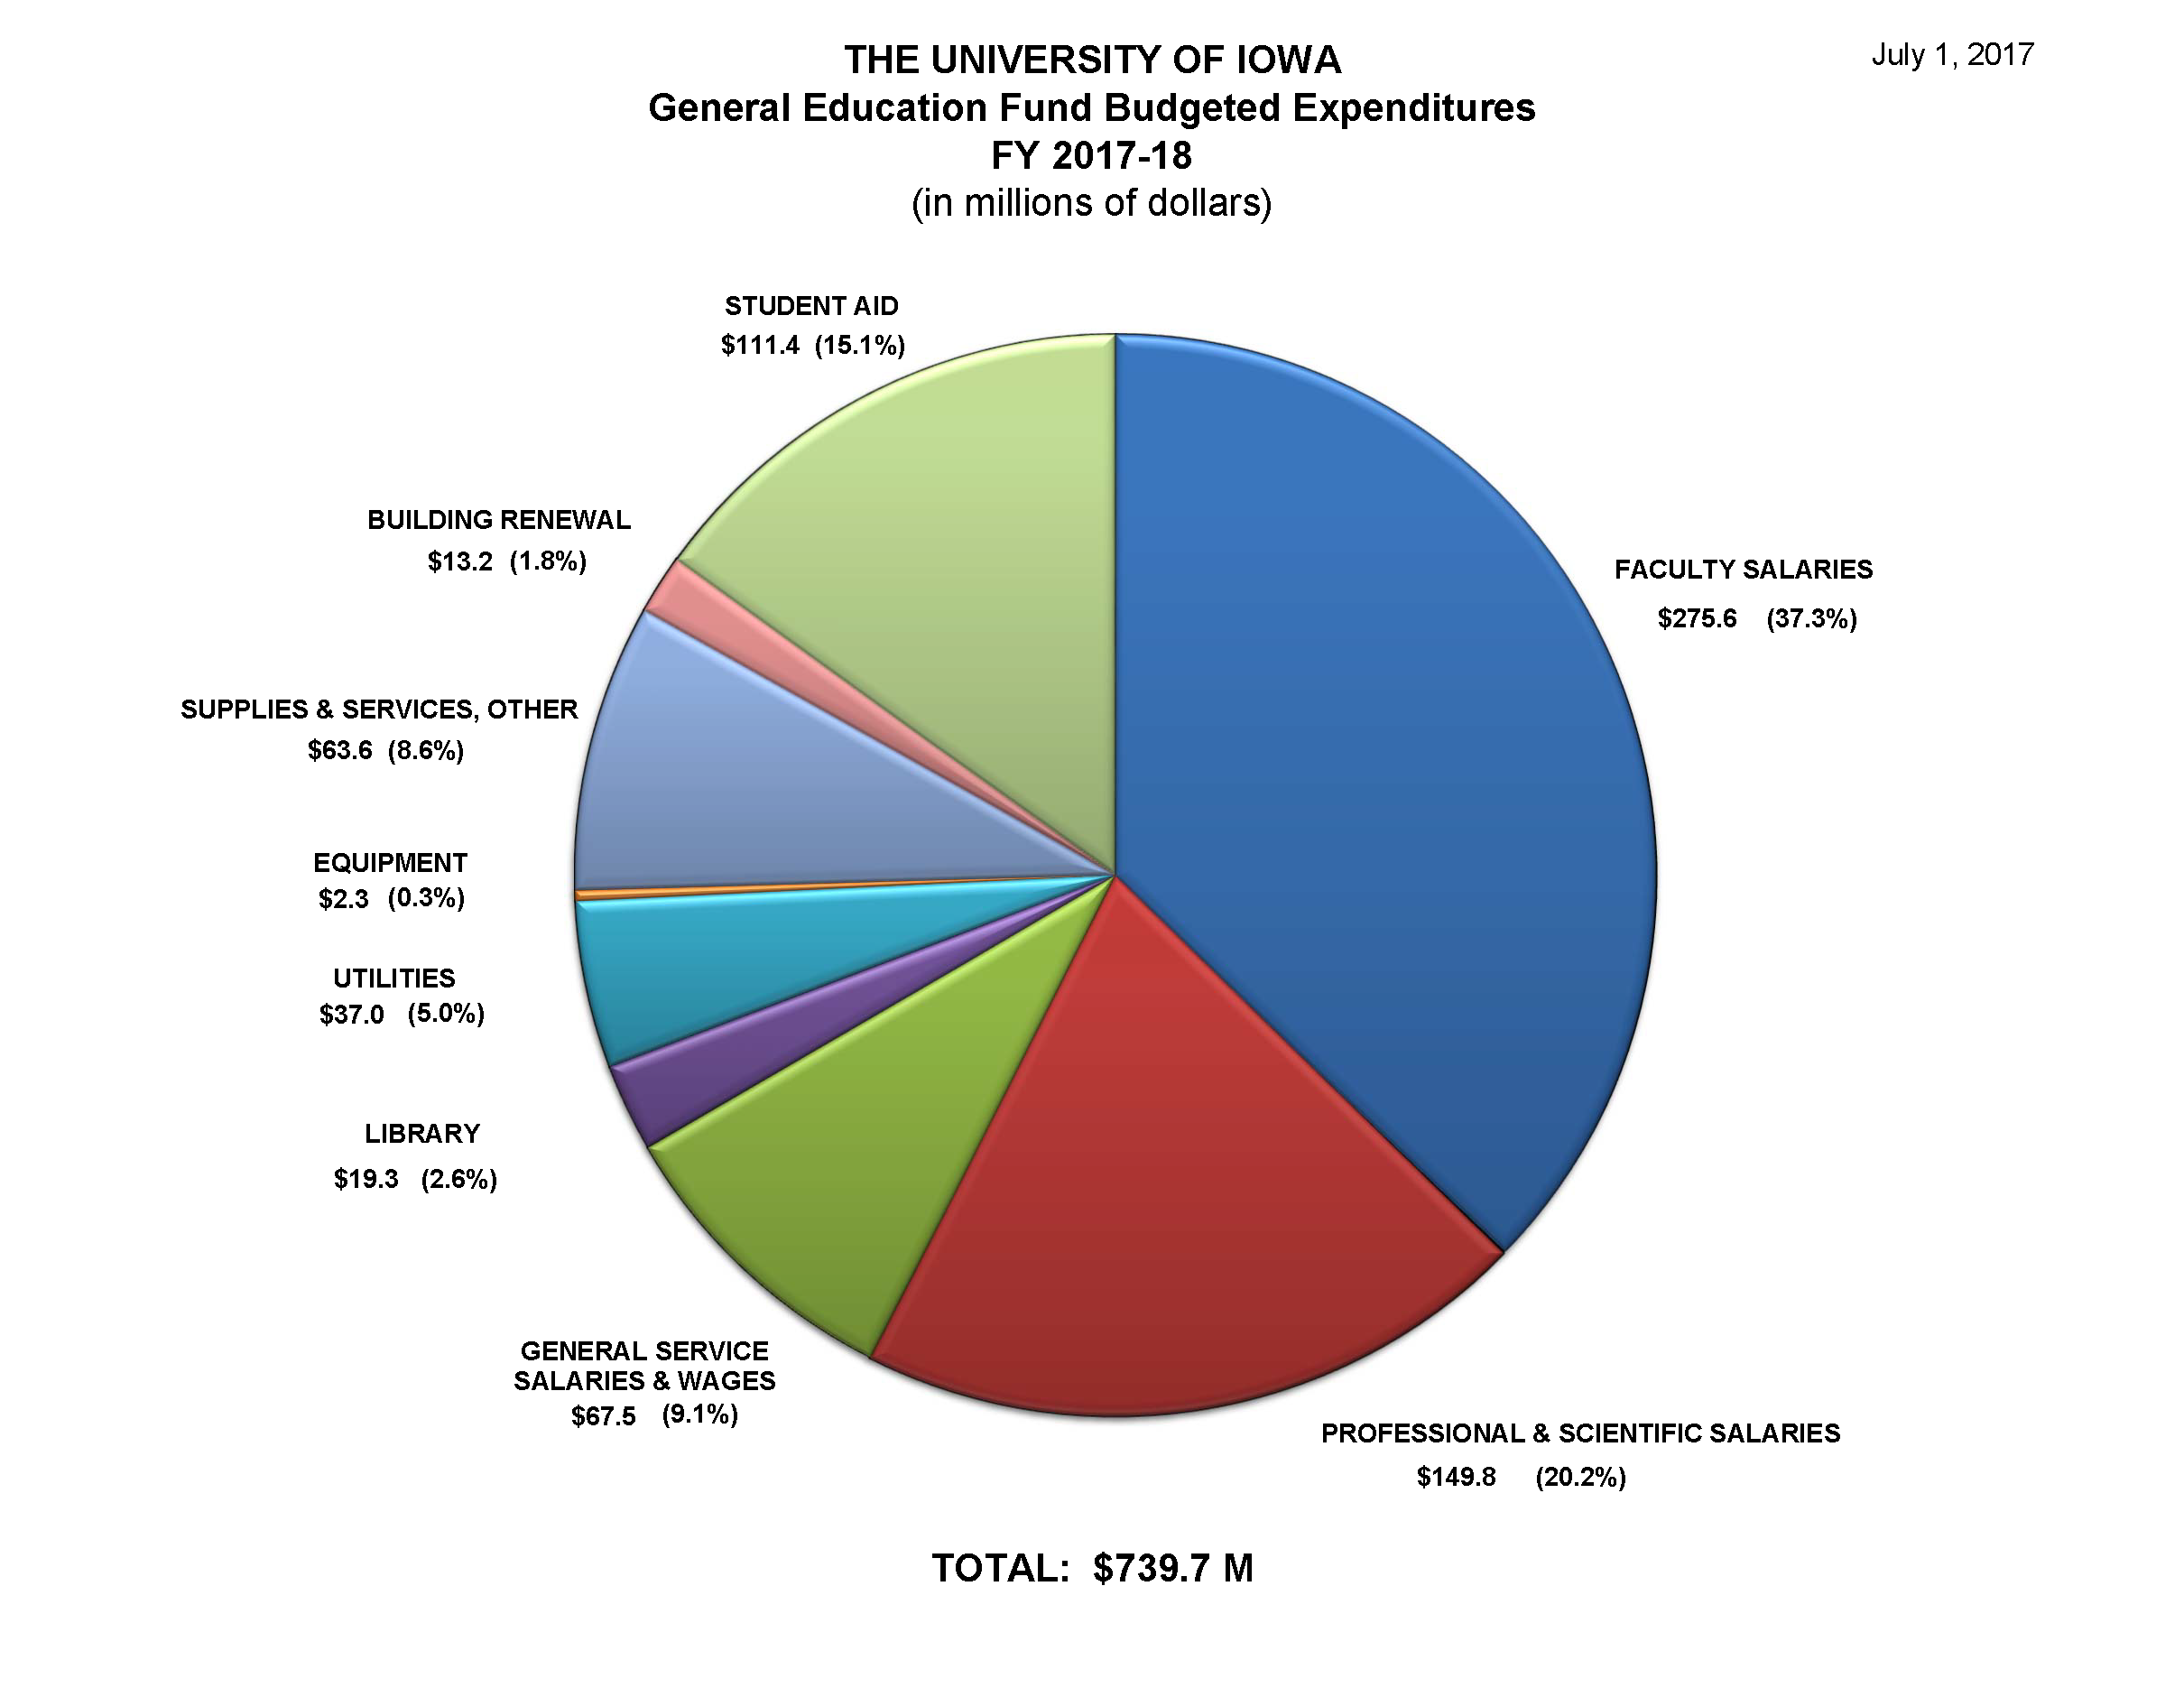 FY 2018 General Education Fund Expenditures